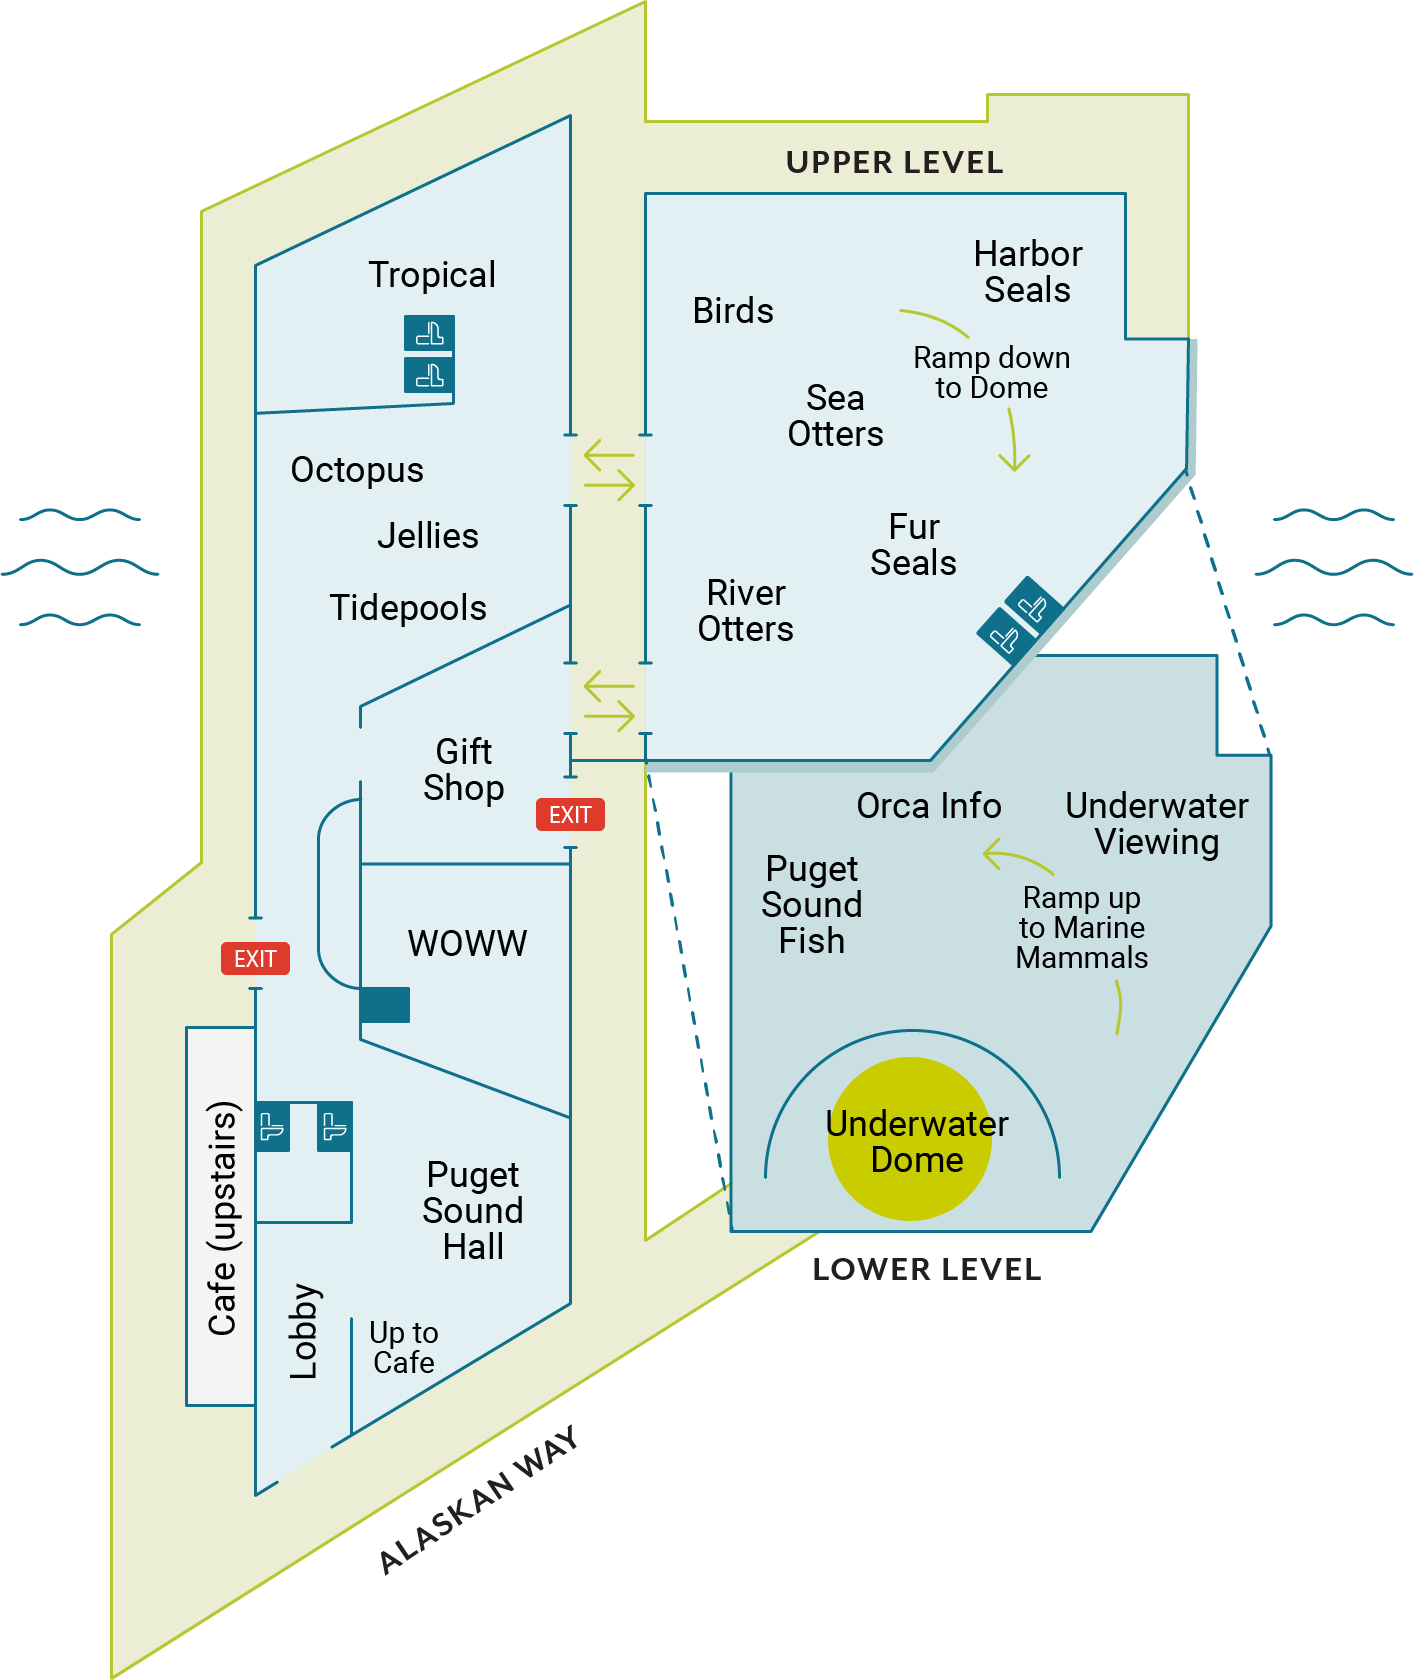 seattle aquarium exhibit map highlighting underwater dome